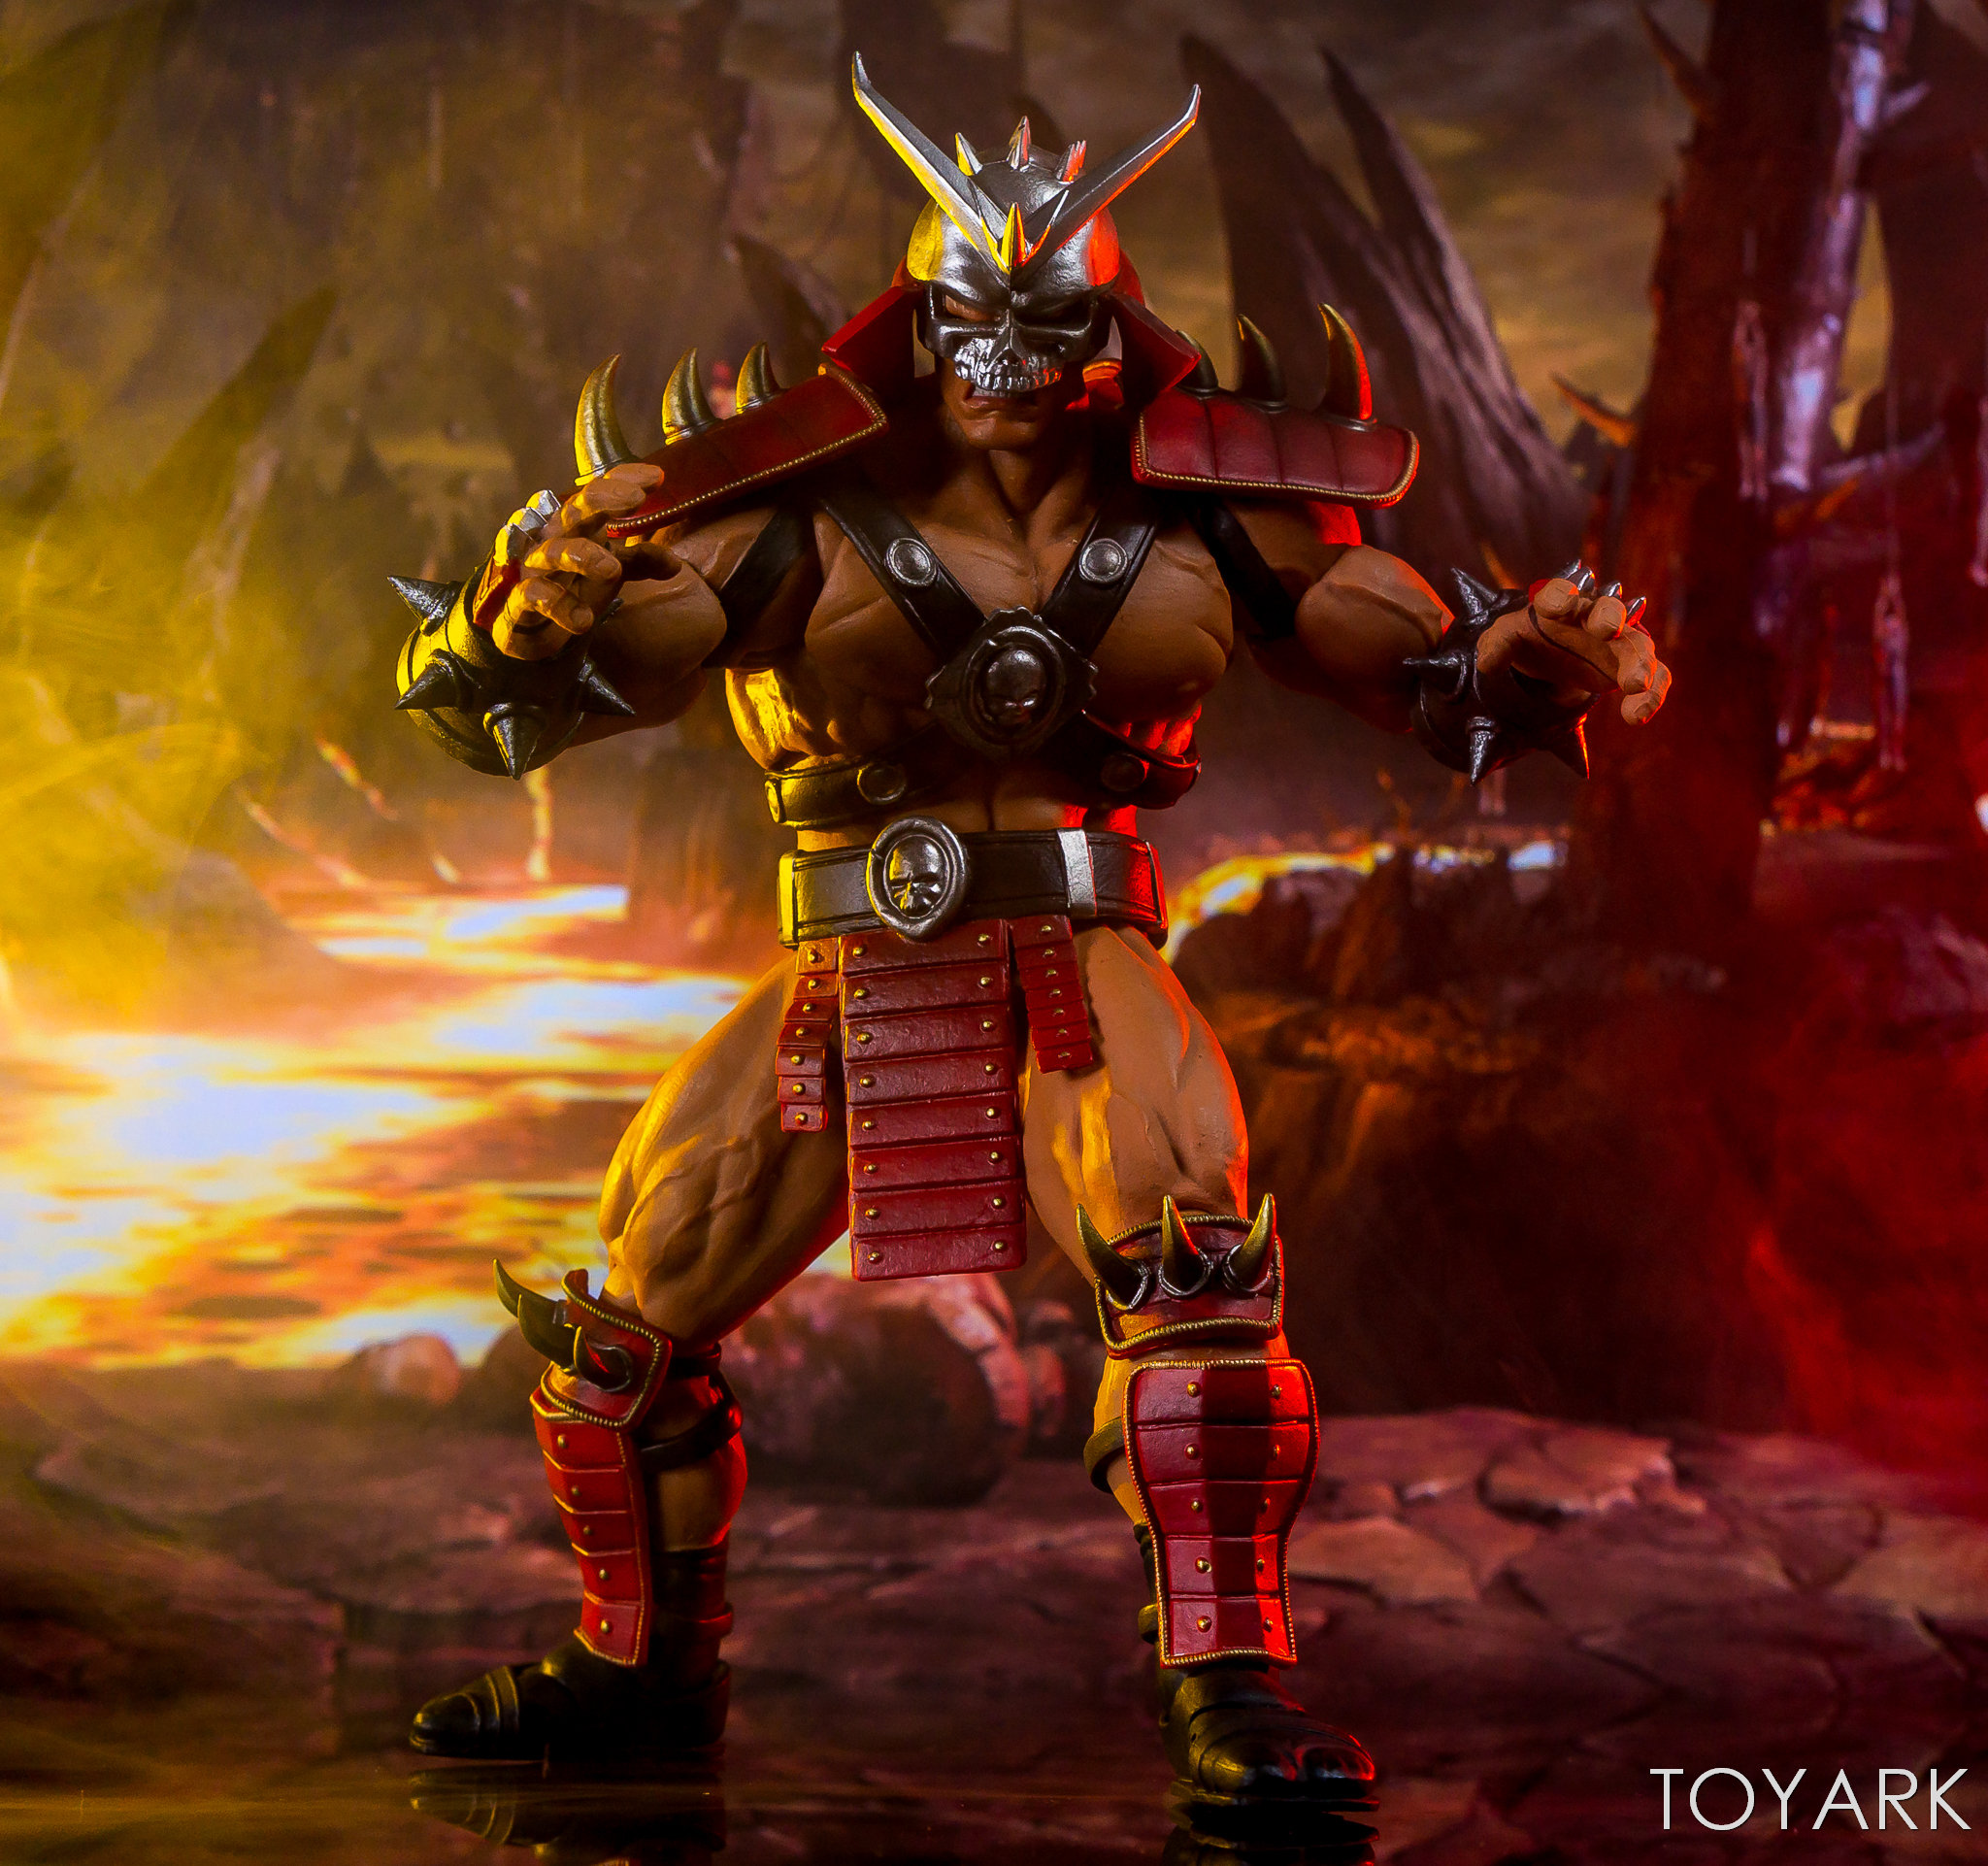 https://news.toyark.com/wp-content/uploads/sites/4/2018/06/Storm-Mortal-Kombat-Shao-Kahn-Figure-025.jpg